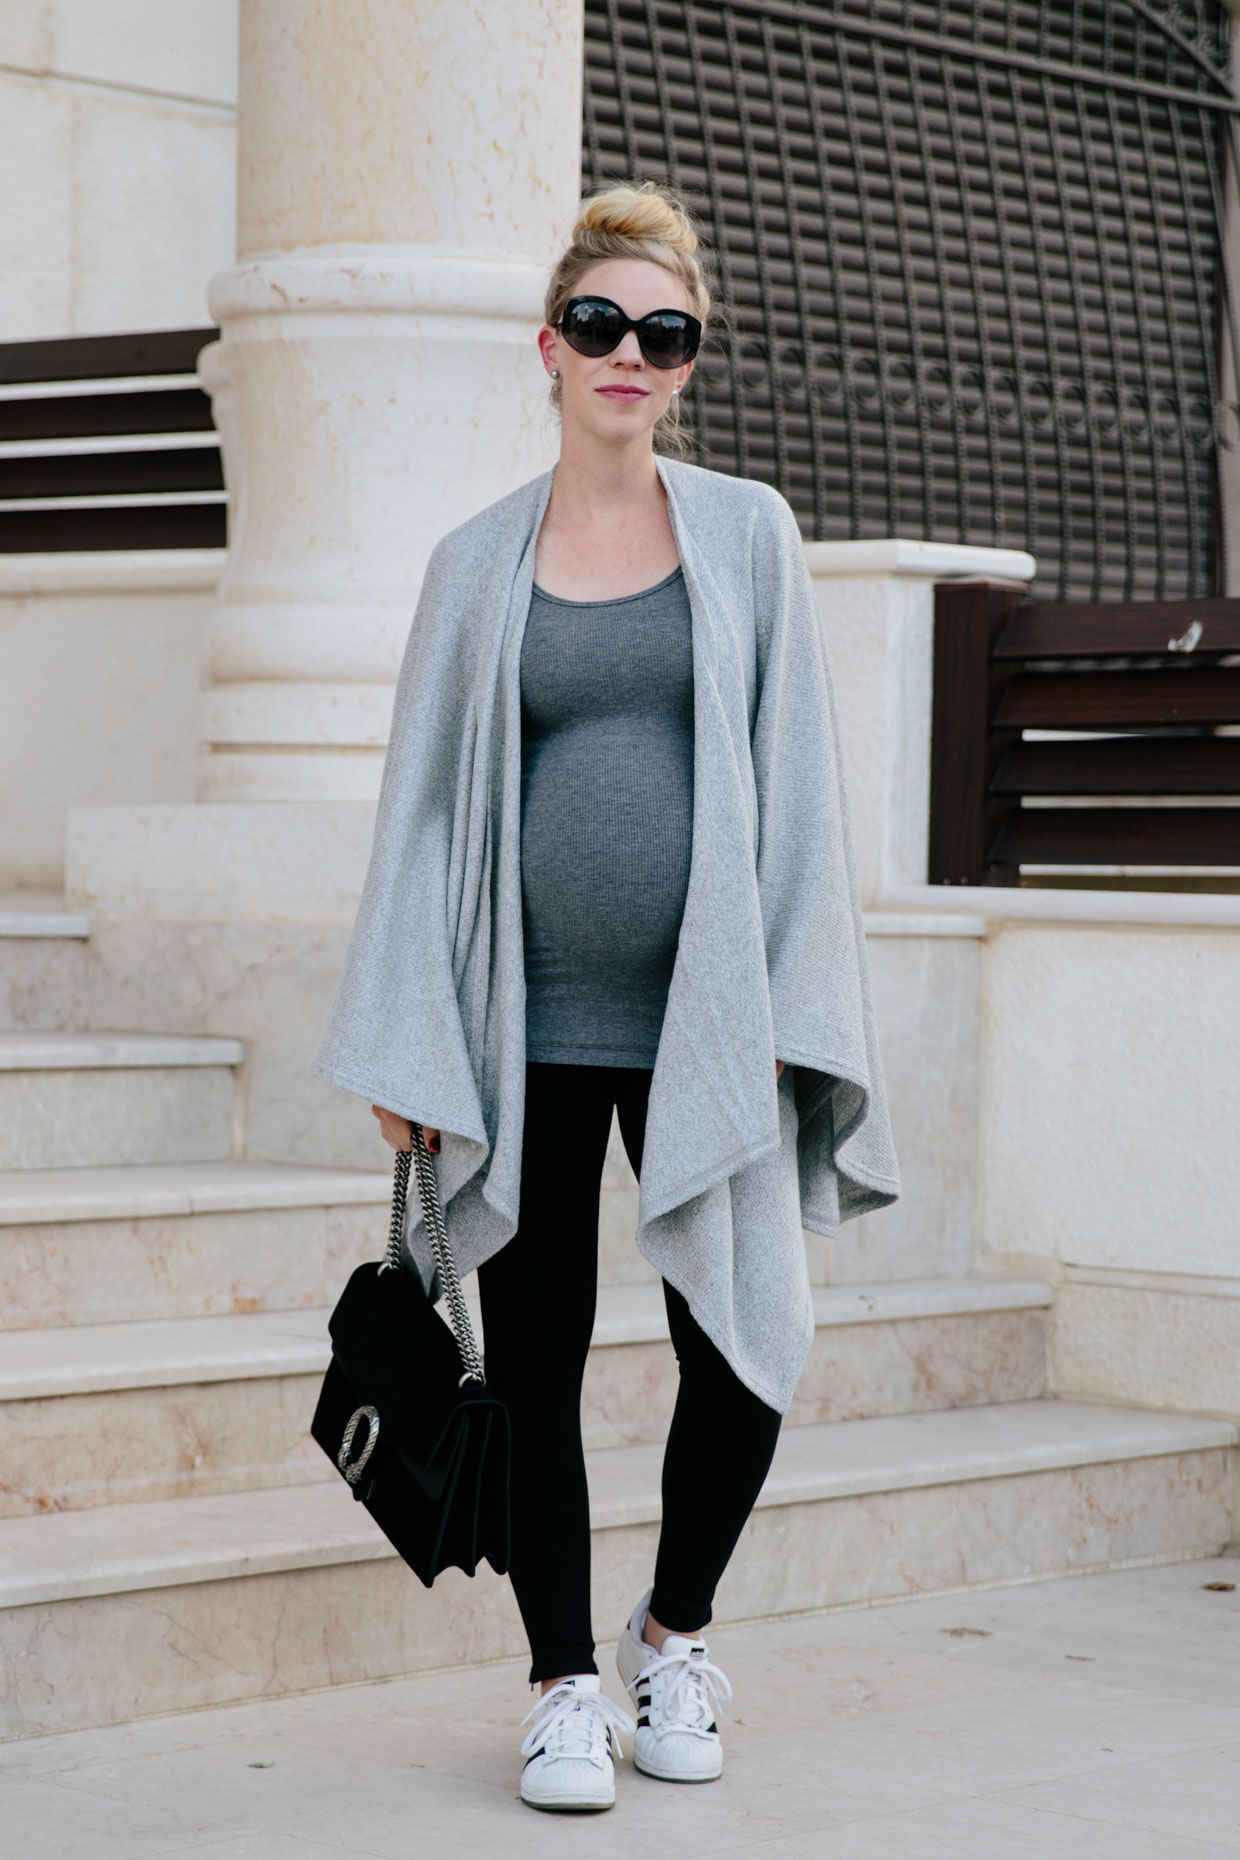 Comfy Chic Travel Outfit u0026 The Most Flattering Maternity Leggings - Meaganu0026#39;s Moda